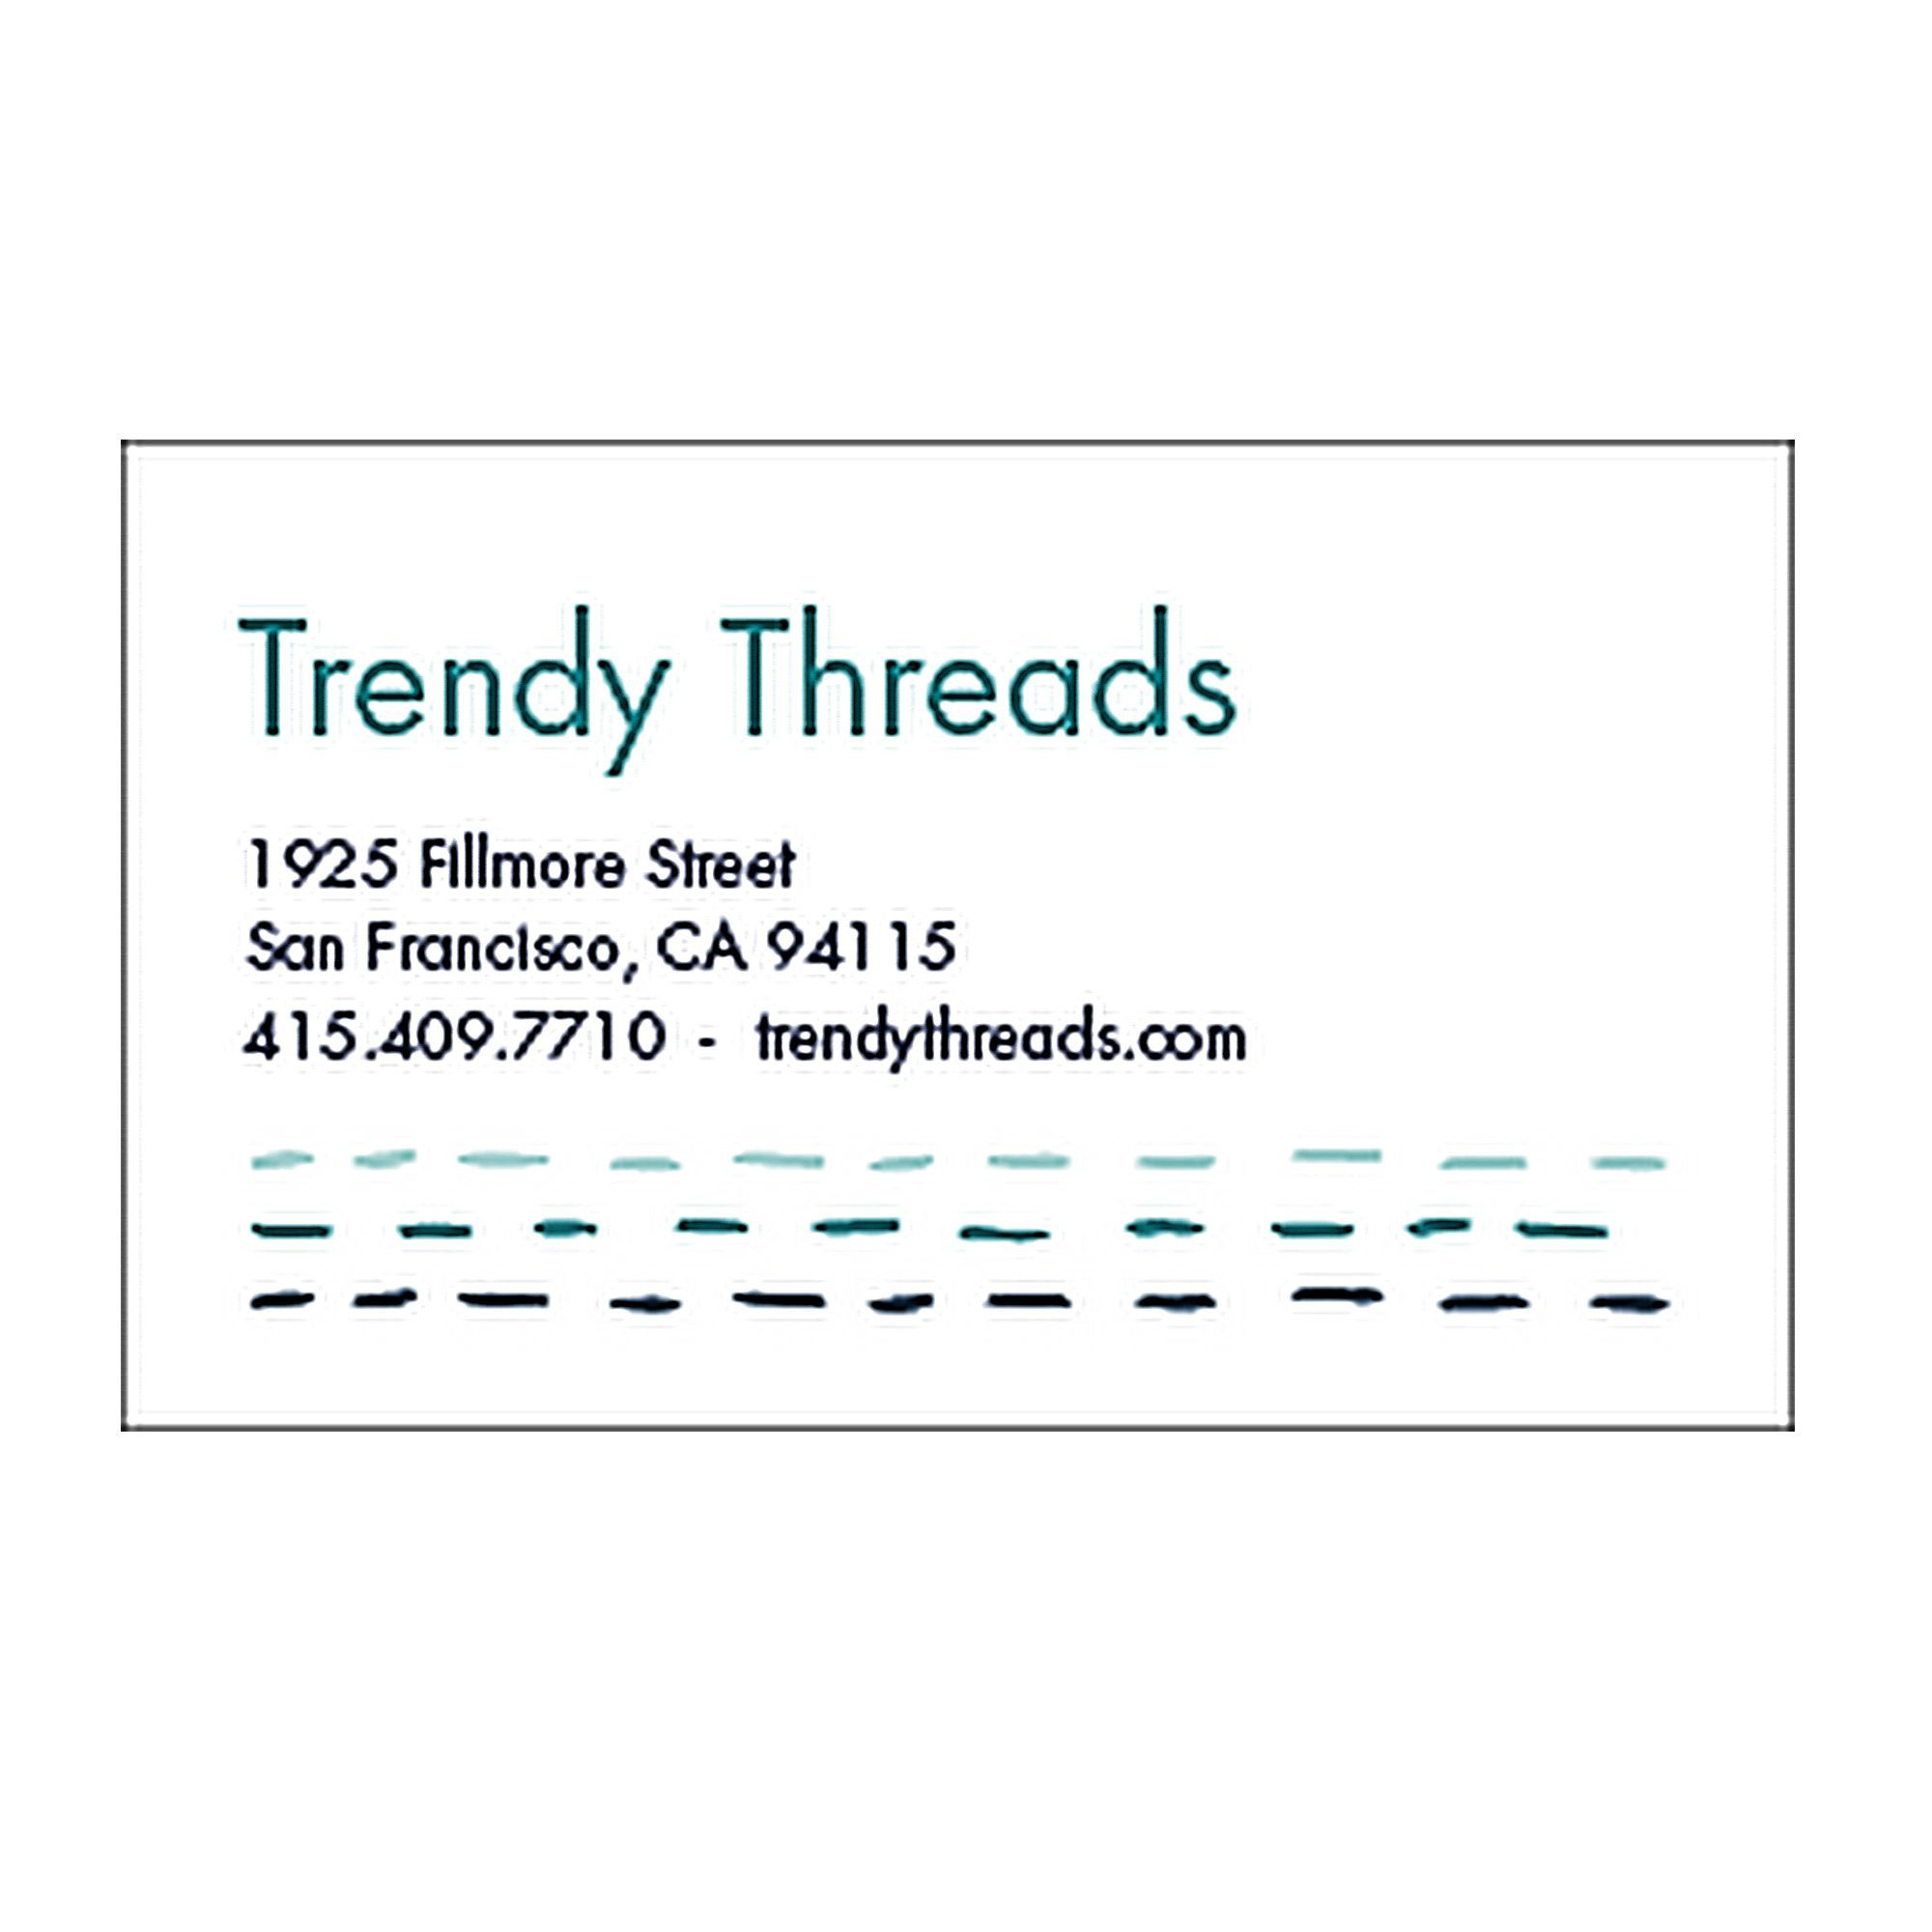 Cool color and fontstyle combo stitch business cards teja pinterest cool color and fontstyle combo stitch business cards reheart Image collections